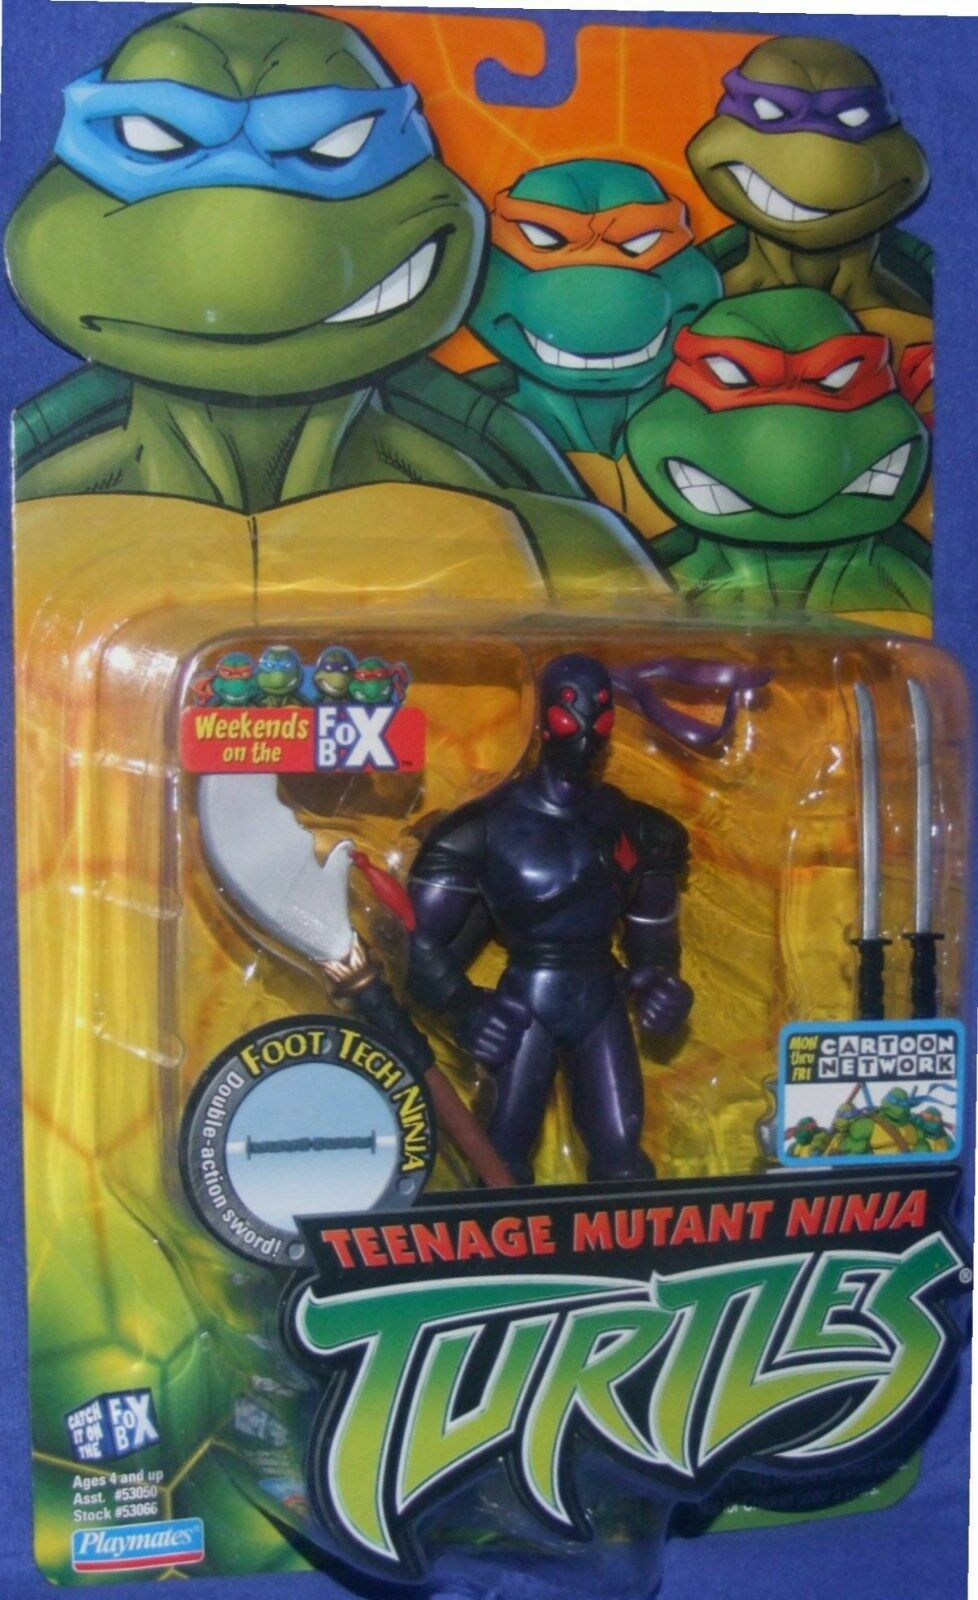 Teenage mutant ninja turtles  fuß - 5 neue fabrik versiegelt playmate - 2003